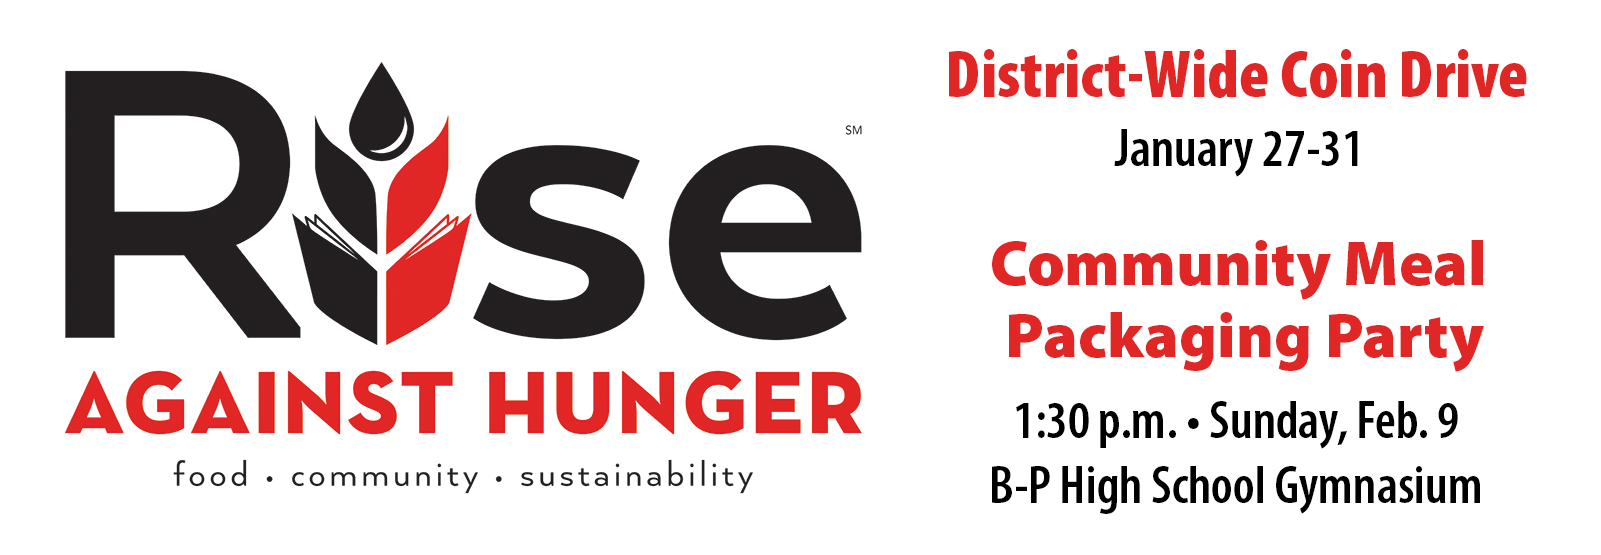 Rise Against Hunger District-Wide Coin Drive January 27-31, Community Meal Packaging Party at 1:30 p.m. Sunday, Feb. 9 at B-P High School Gymnasium